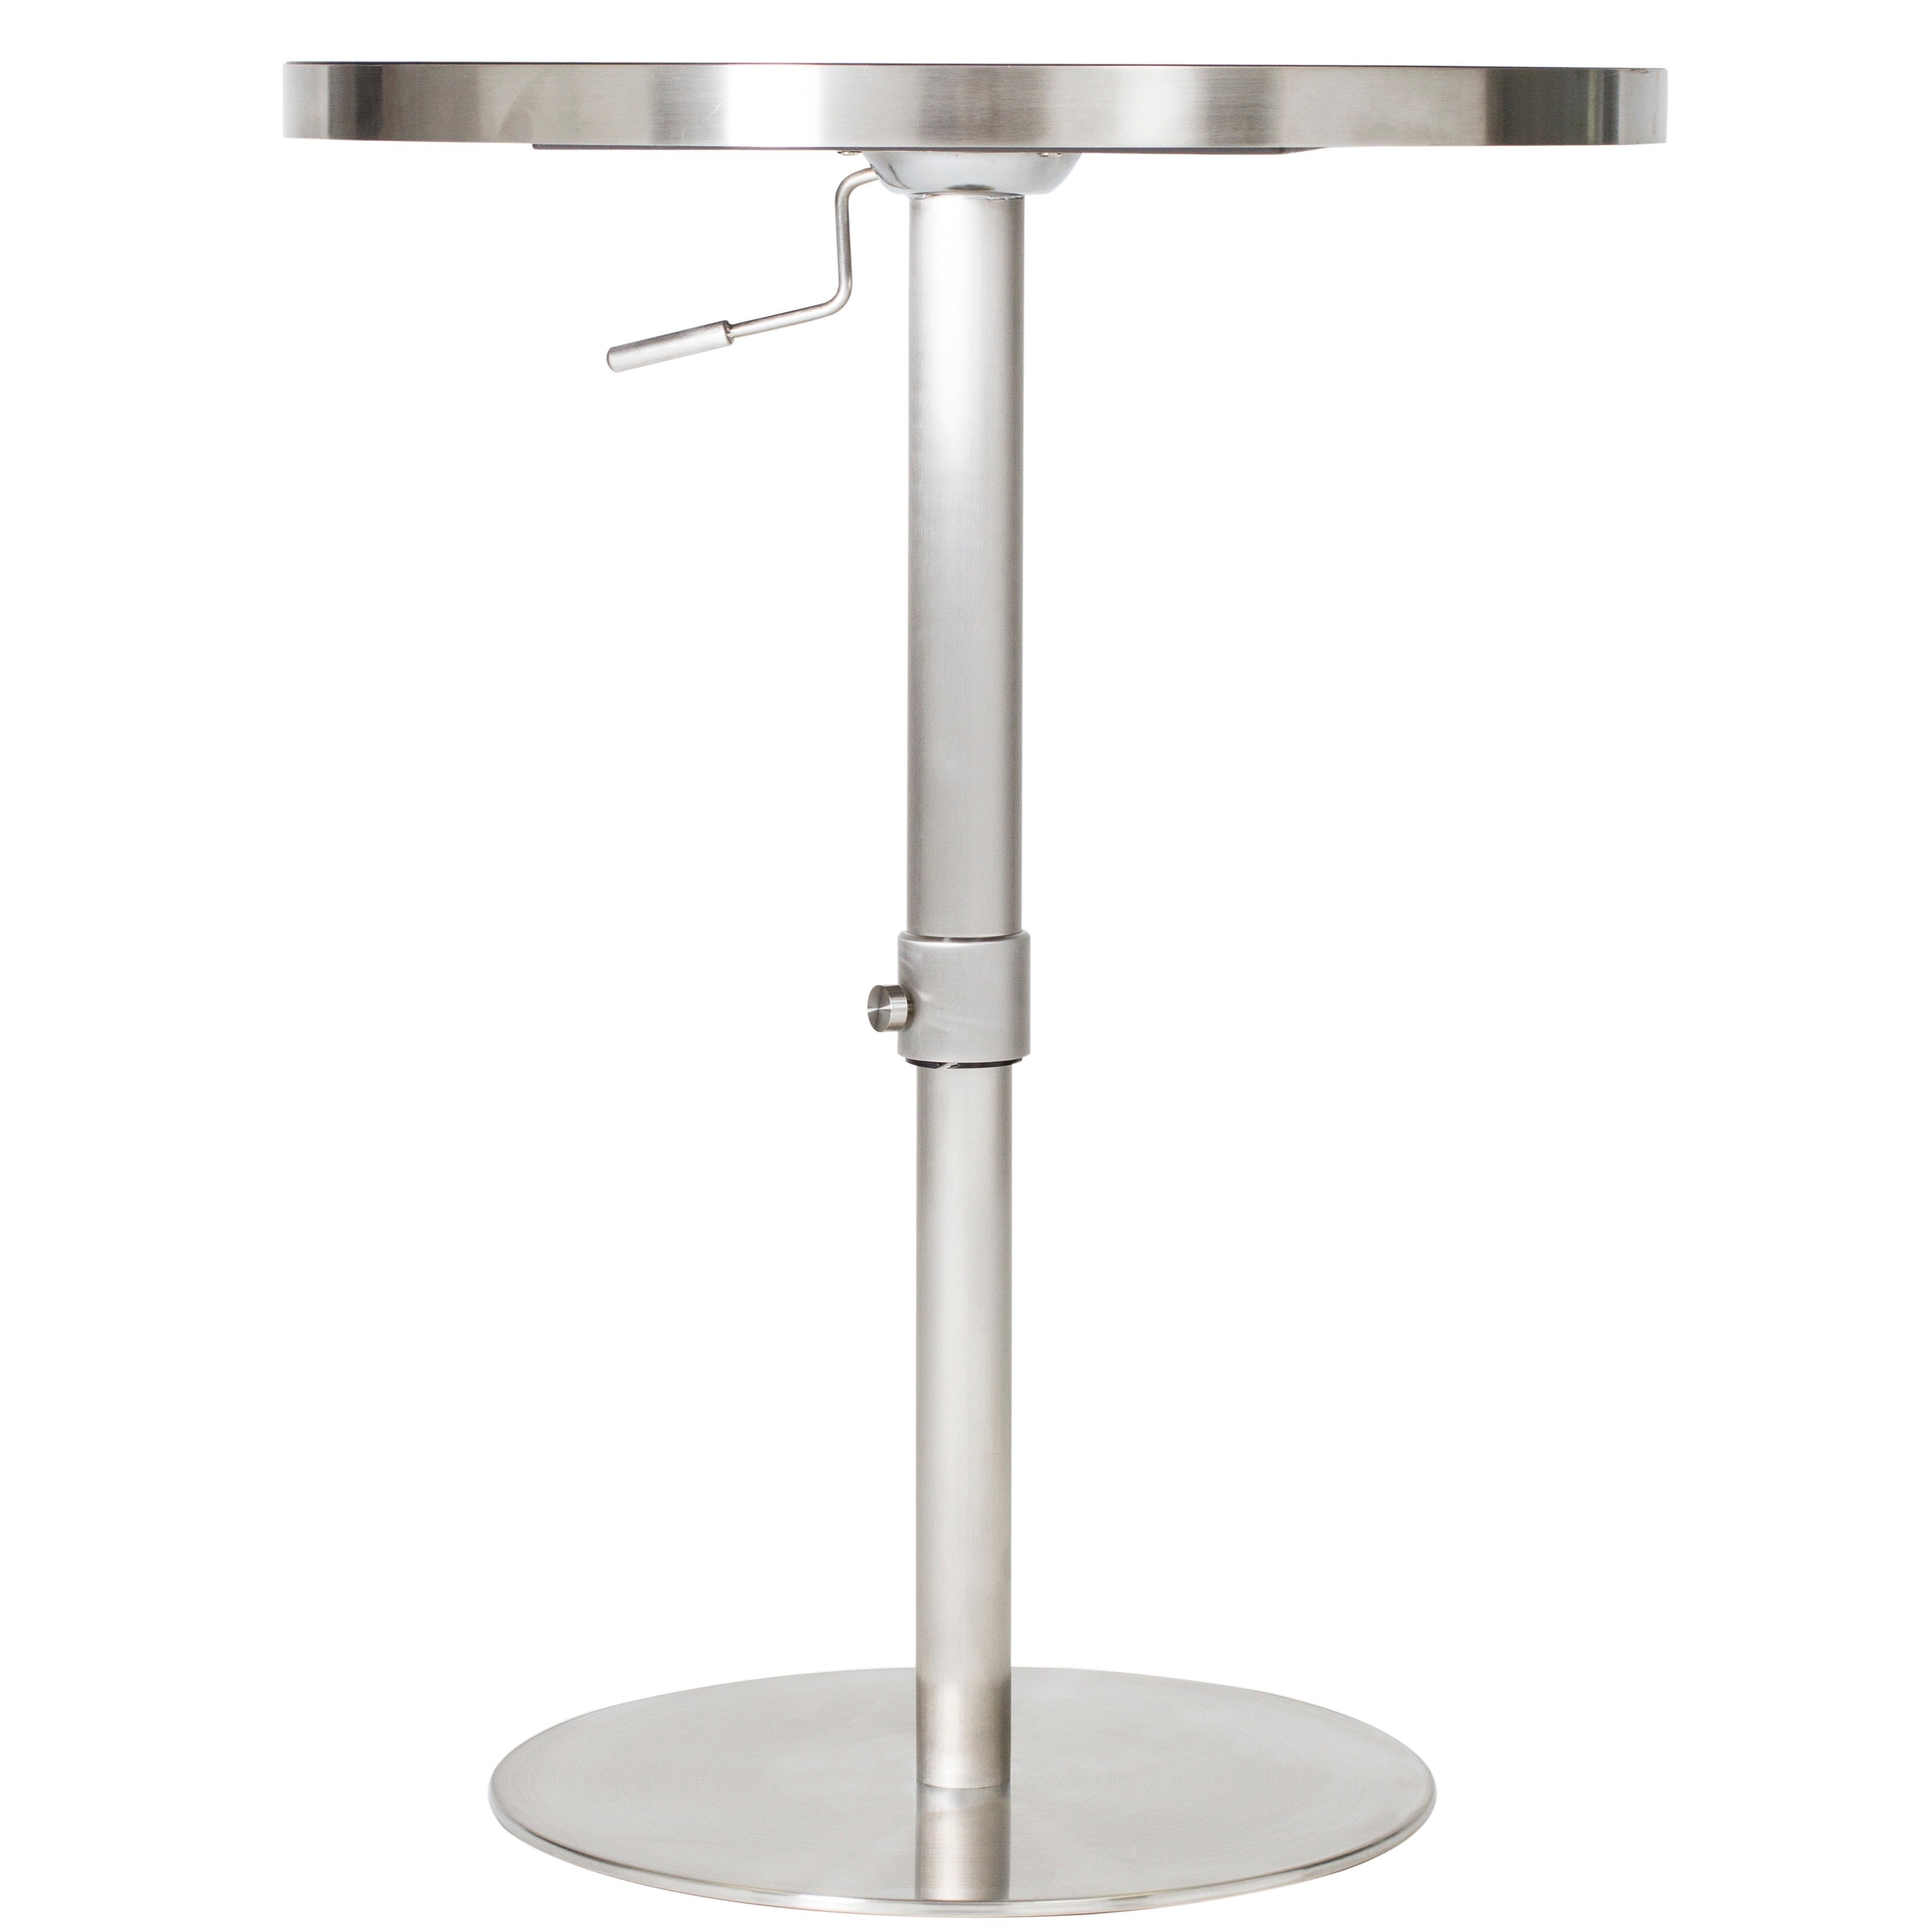 MIX 26   36 Inch Adjustable Height Round Espresso Wood Melamine Veneer  Brushed Stainless Steel Pub Table With Round Slab Base   Free Shipping  Today ...